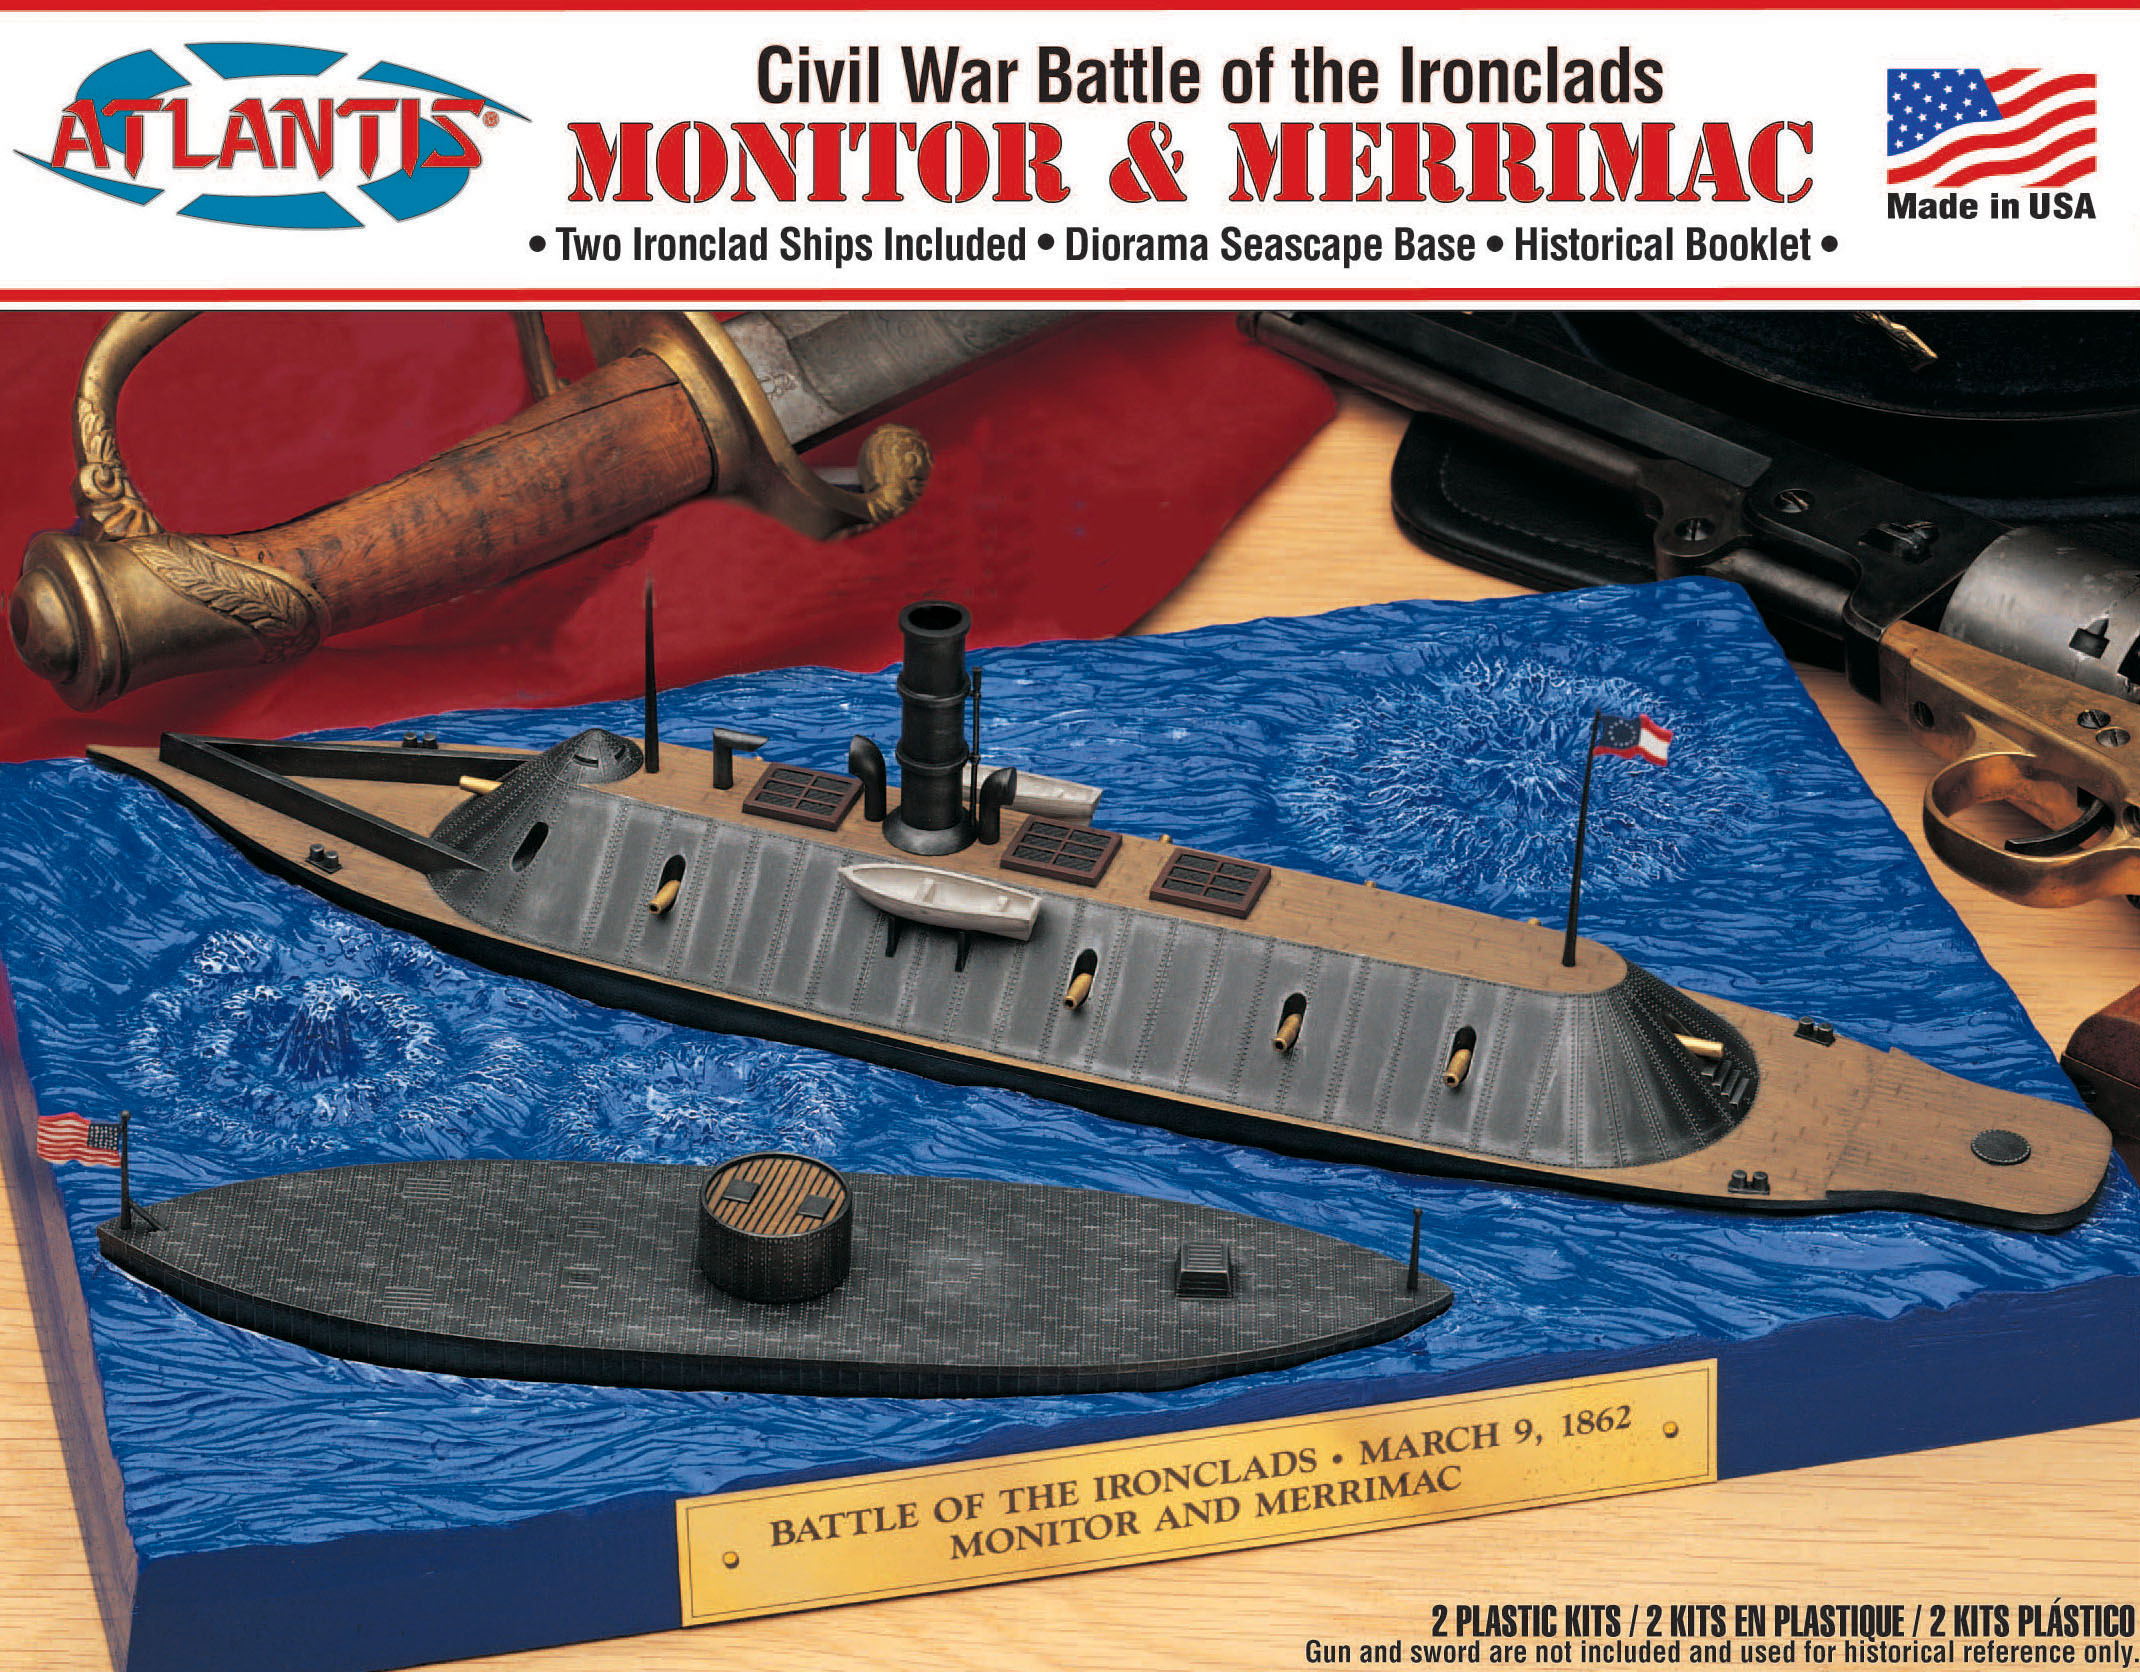 Atlantis Monitor and Merrimack Civil War Set